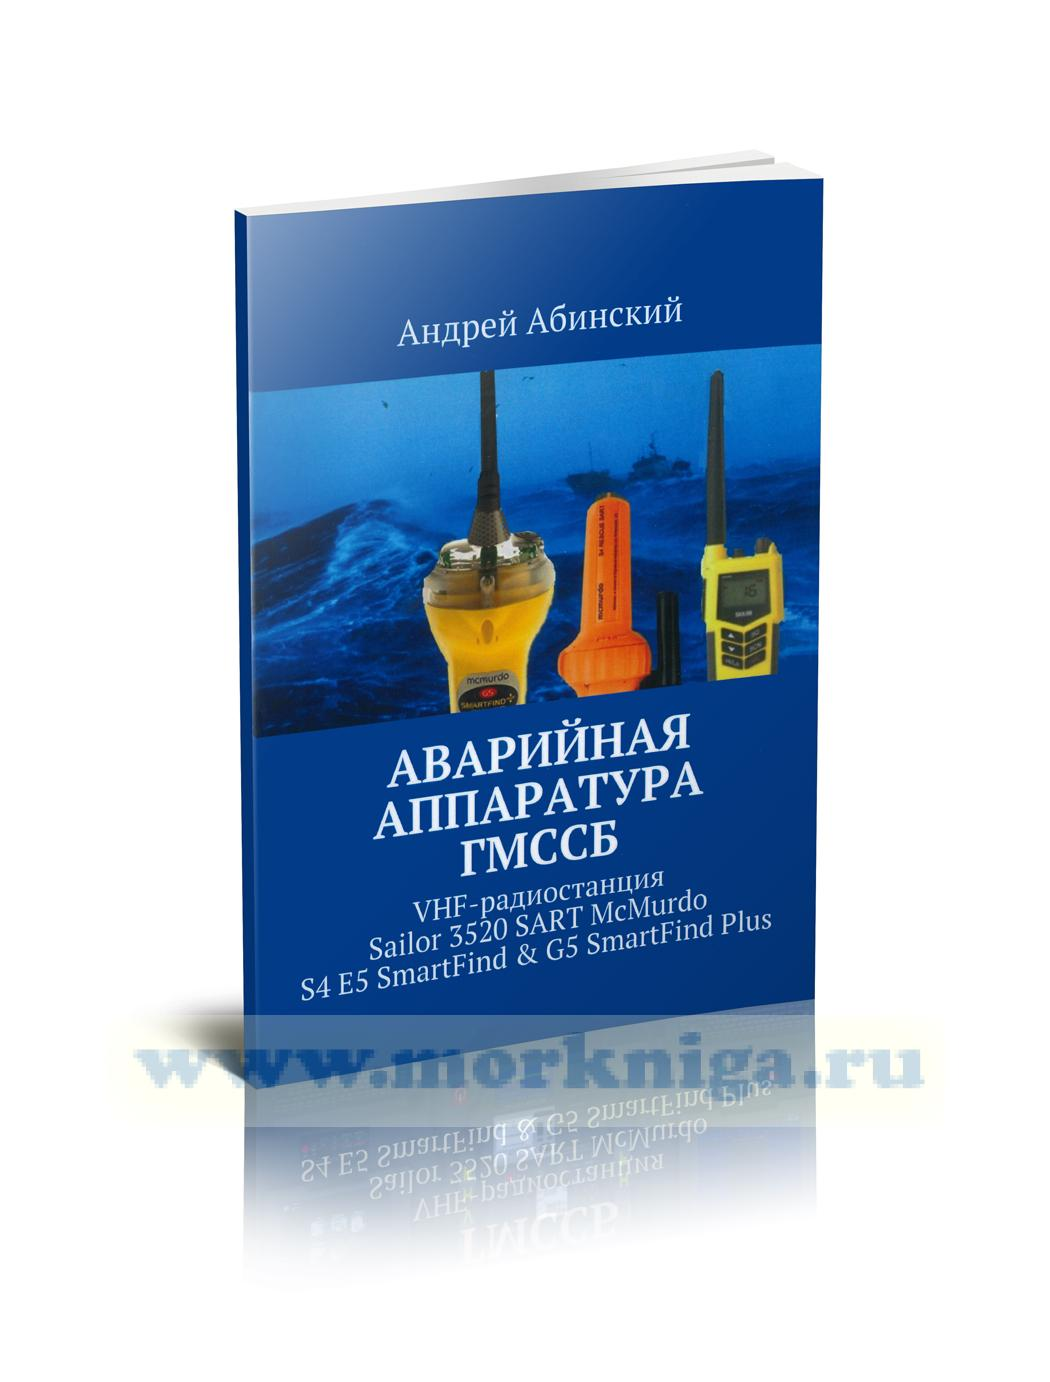 Аварийная аппаратура ГМССБ: VHF-радиостанция Sailor 3520 SART McMurdo S4 E5 SmartFind and G5  SmartFind Plus